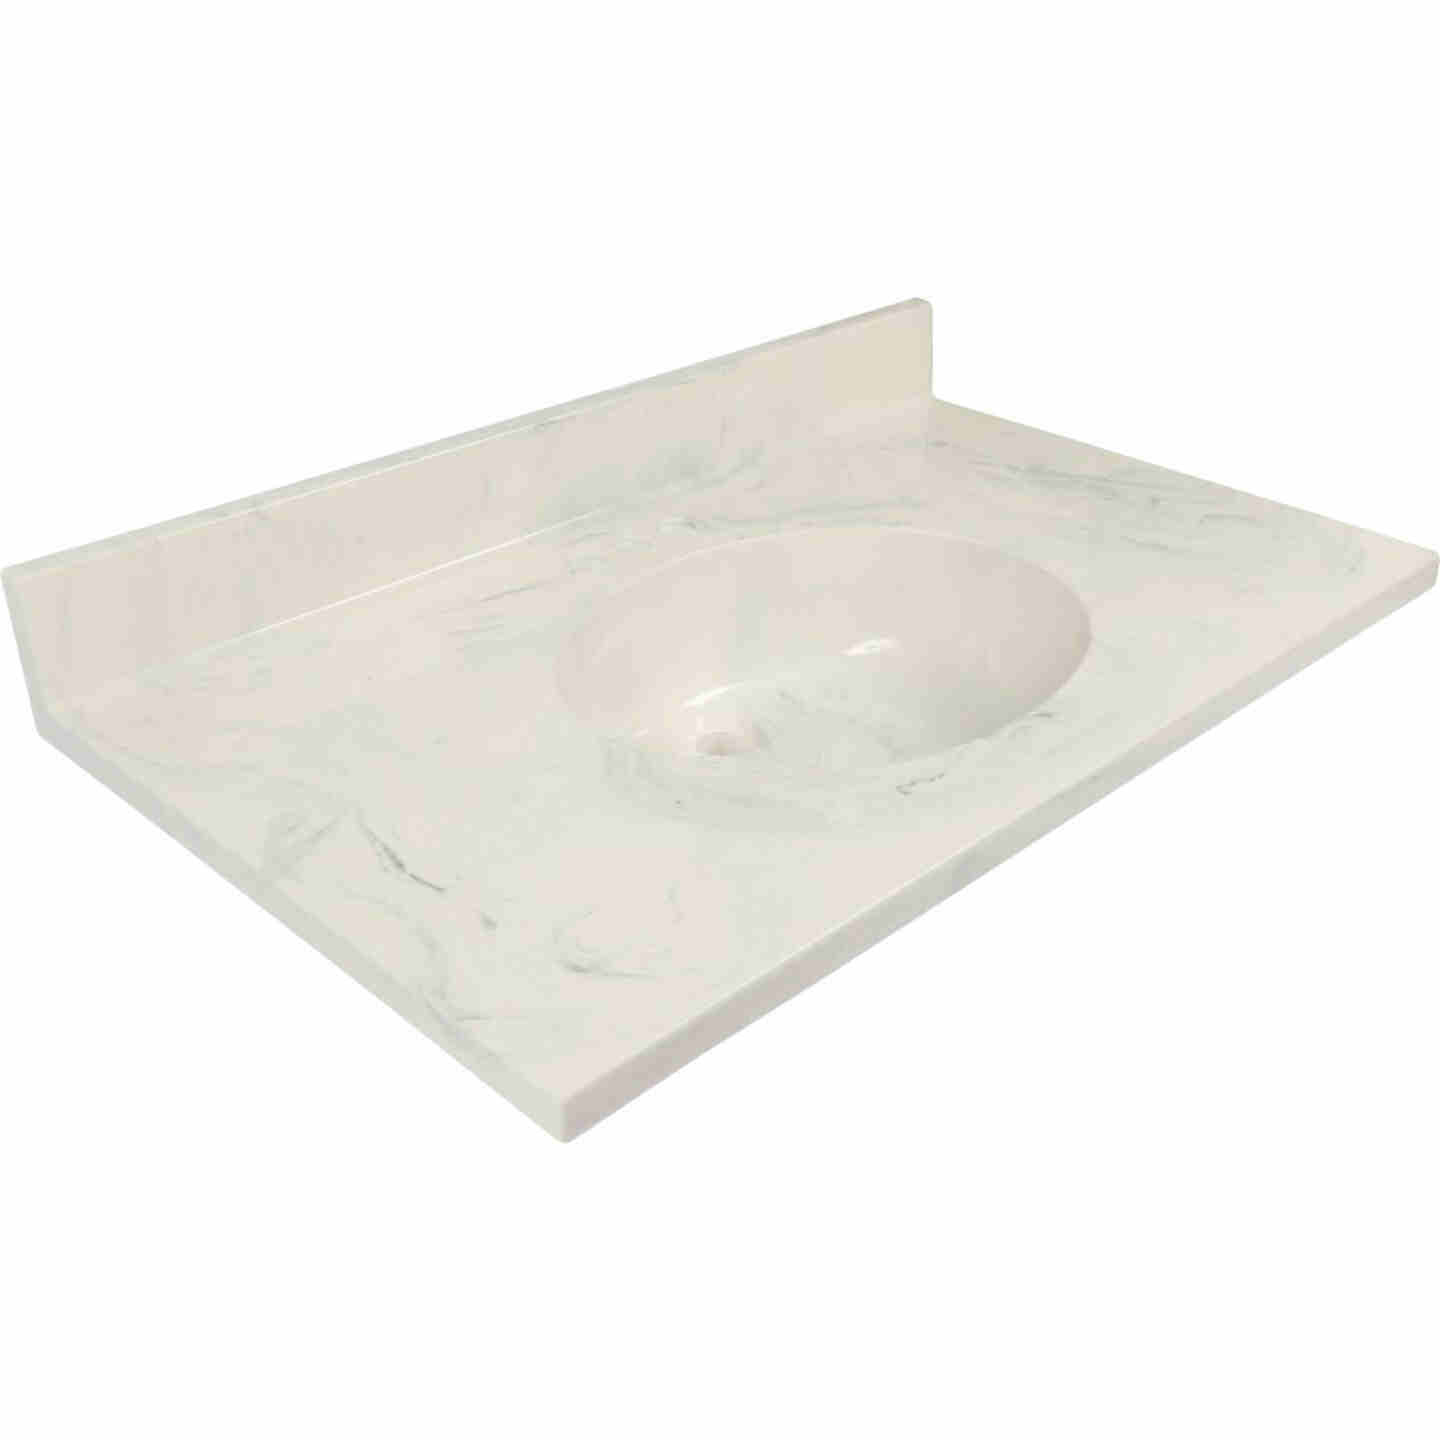 Modular Vanity Tops 37 In. W x 22 In. D Marbled Dove Gray Cultured Marble Flat Edge Vanity Top with Oval Bowl Image 1